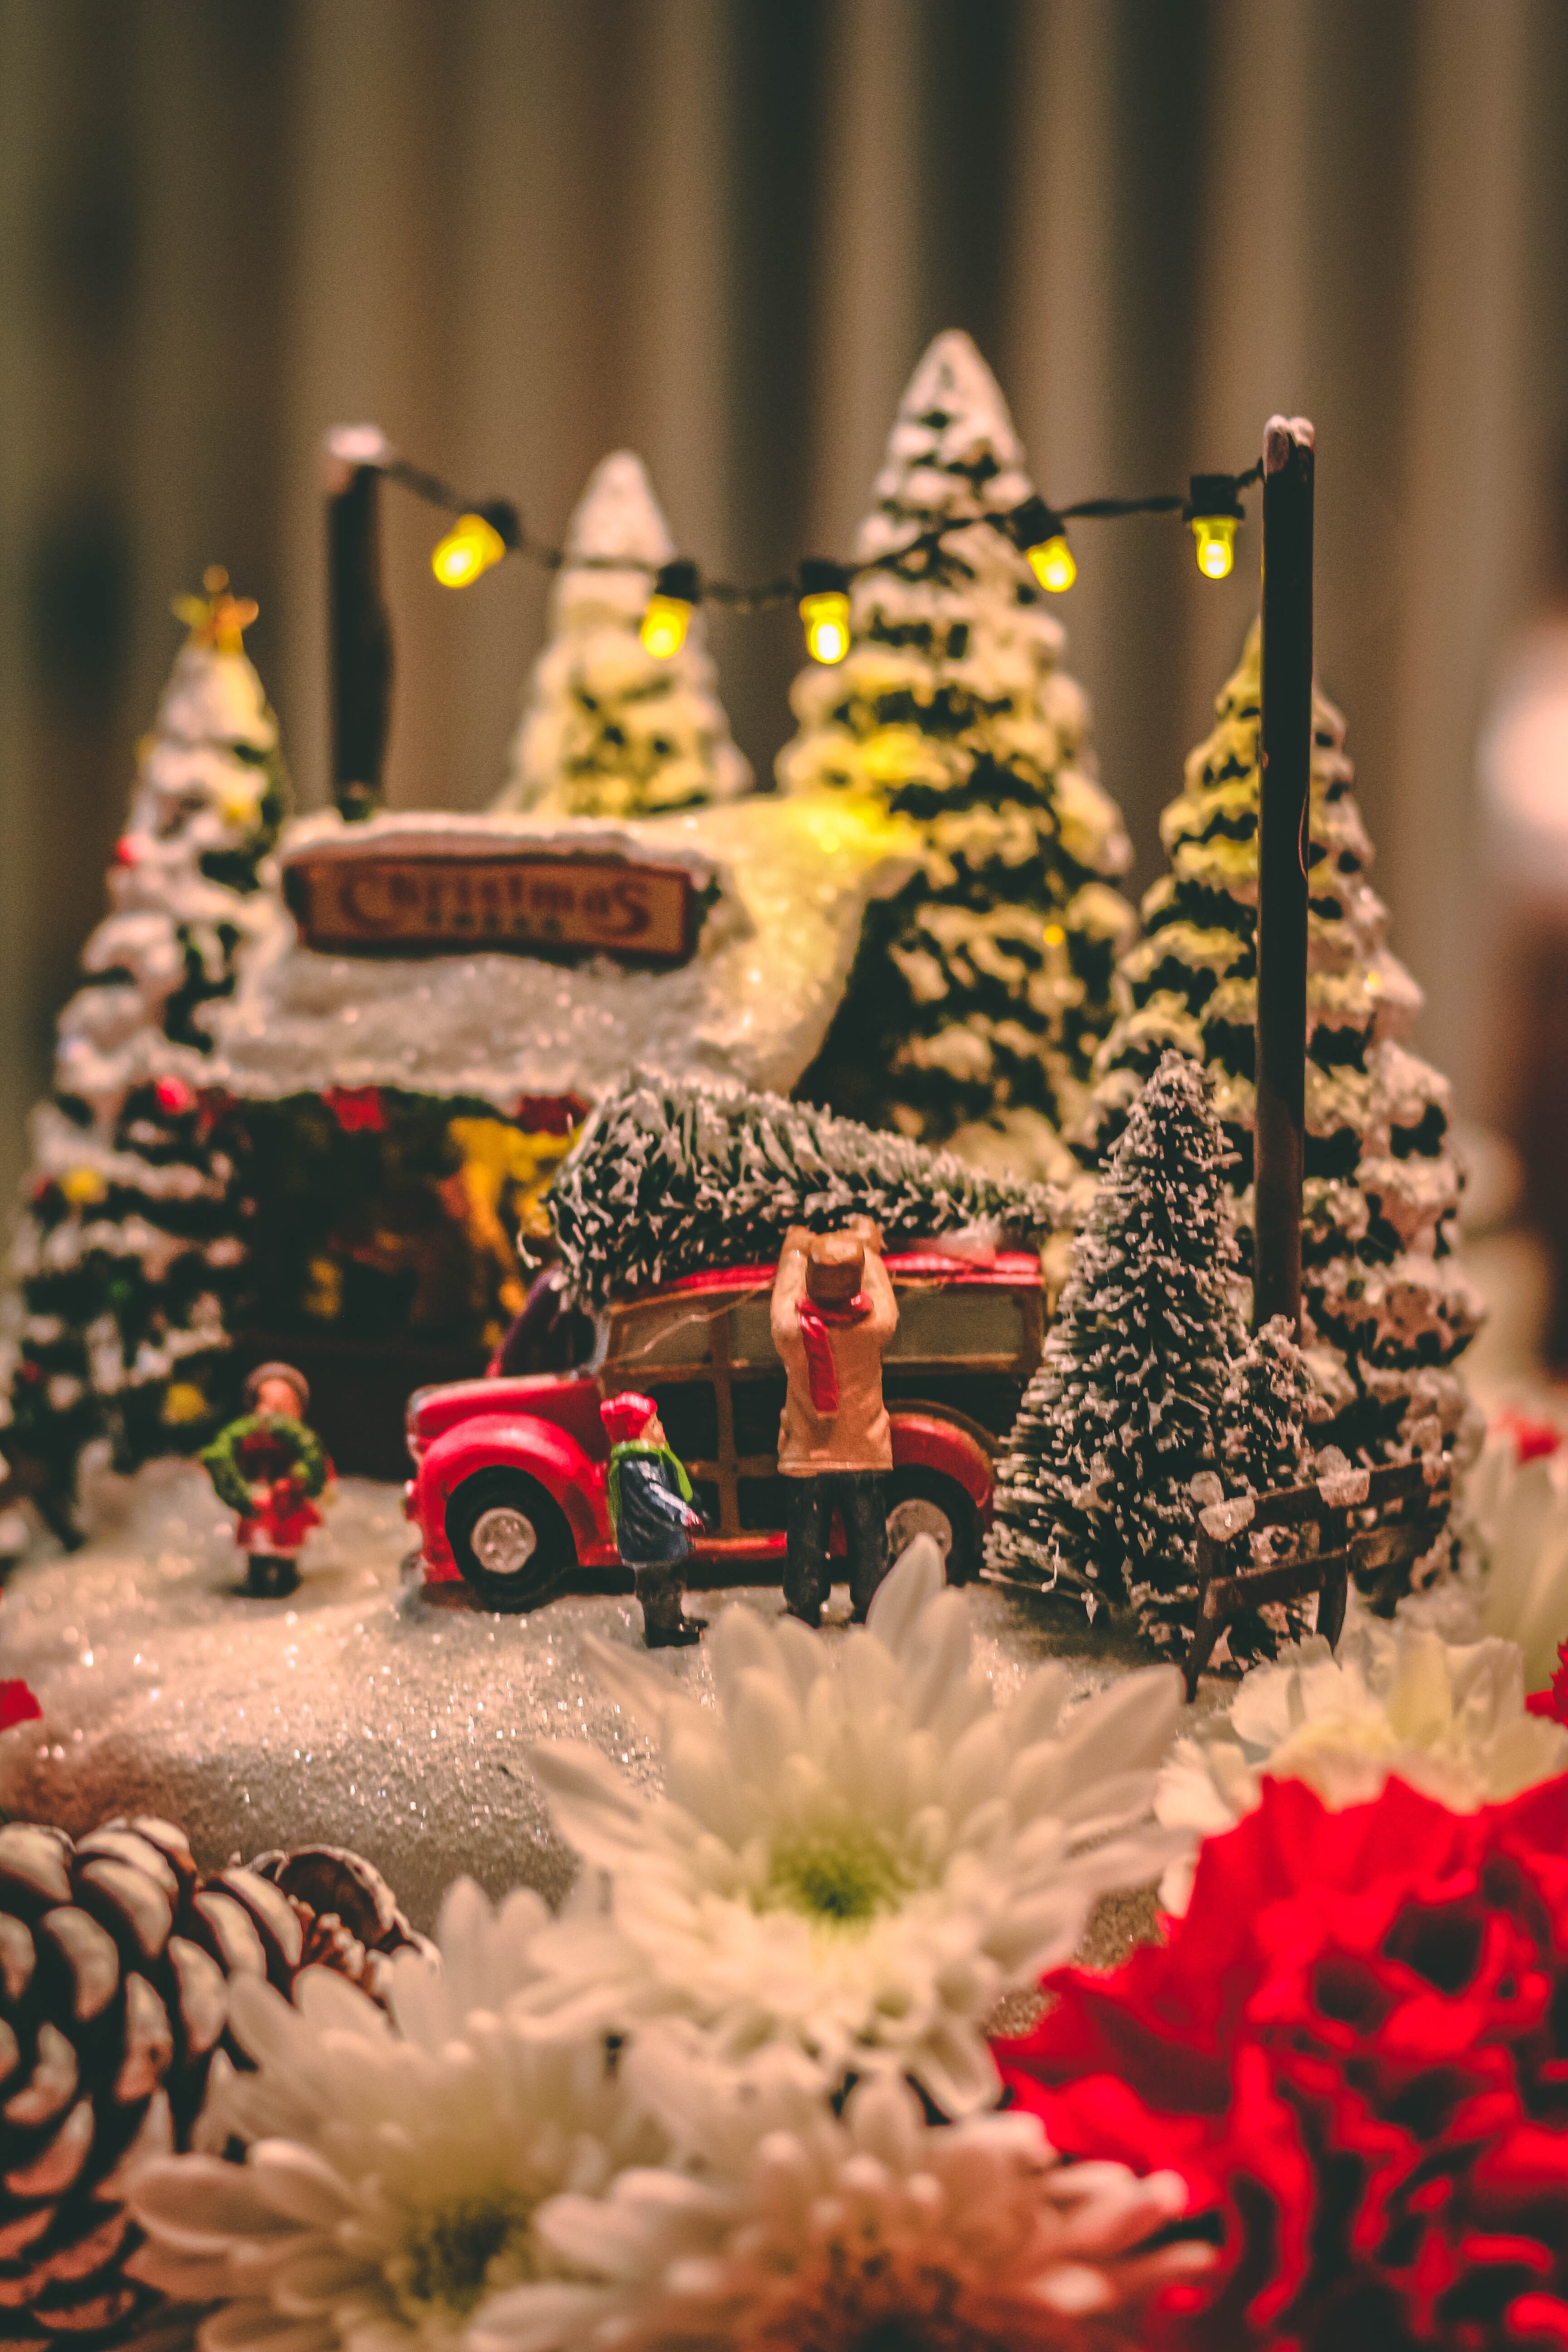 close-up photography of Christmas decoration